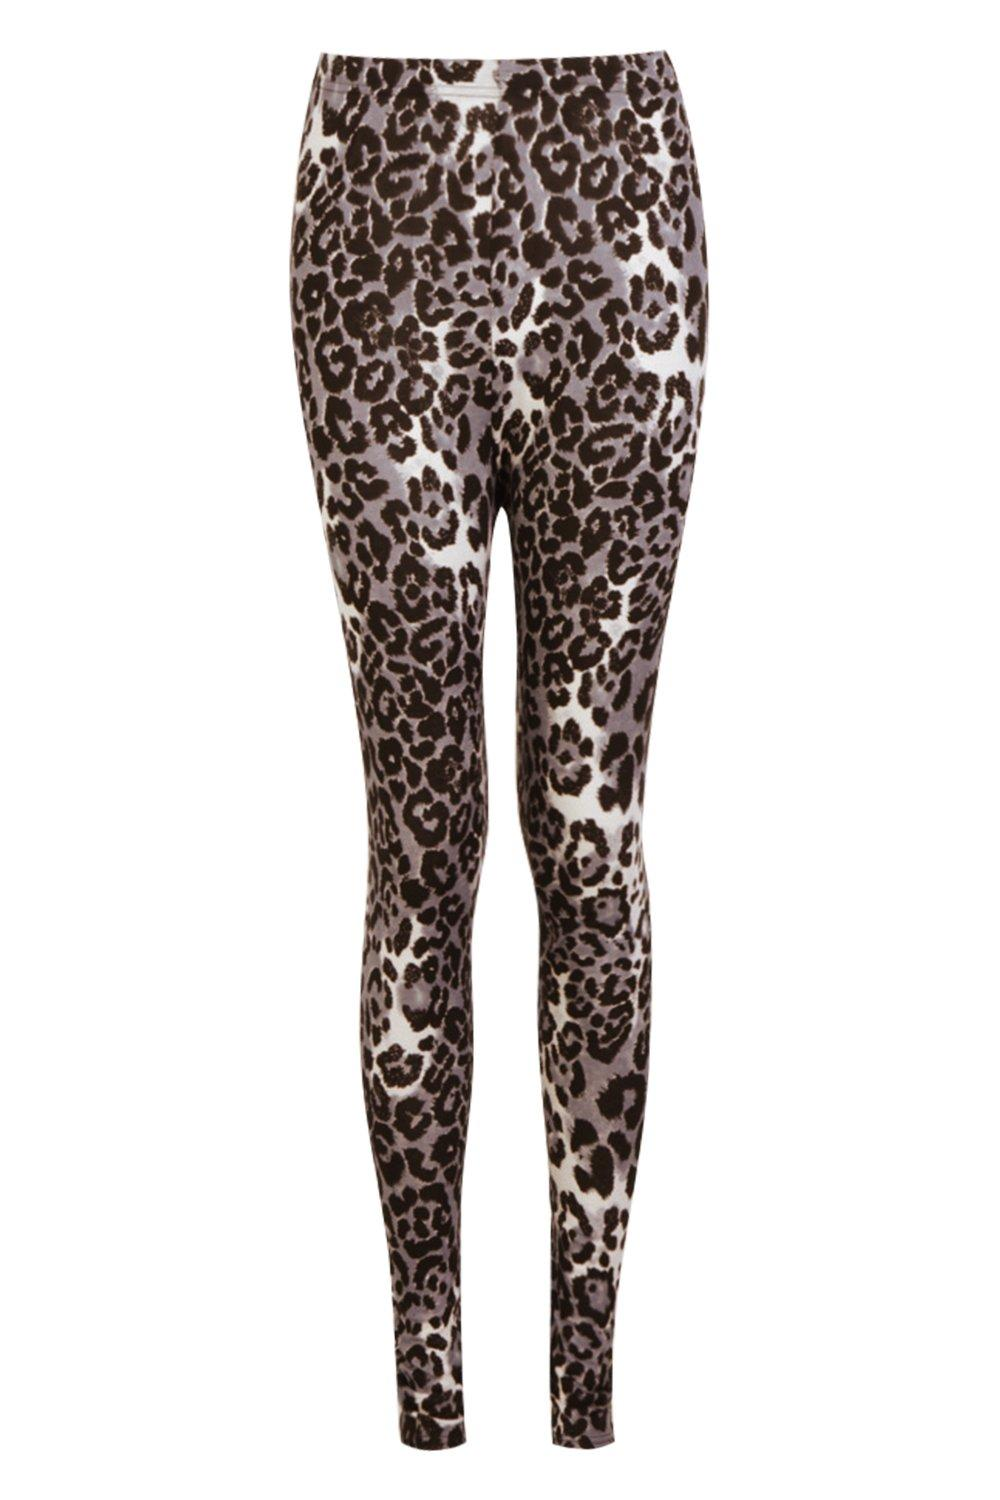 Leopard Leopard Leggings Leggings Print grey Print Leopard Leggings grey Print A8qEwTY8